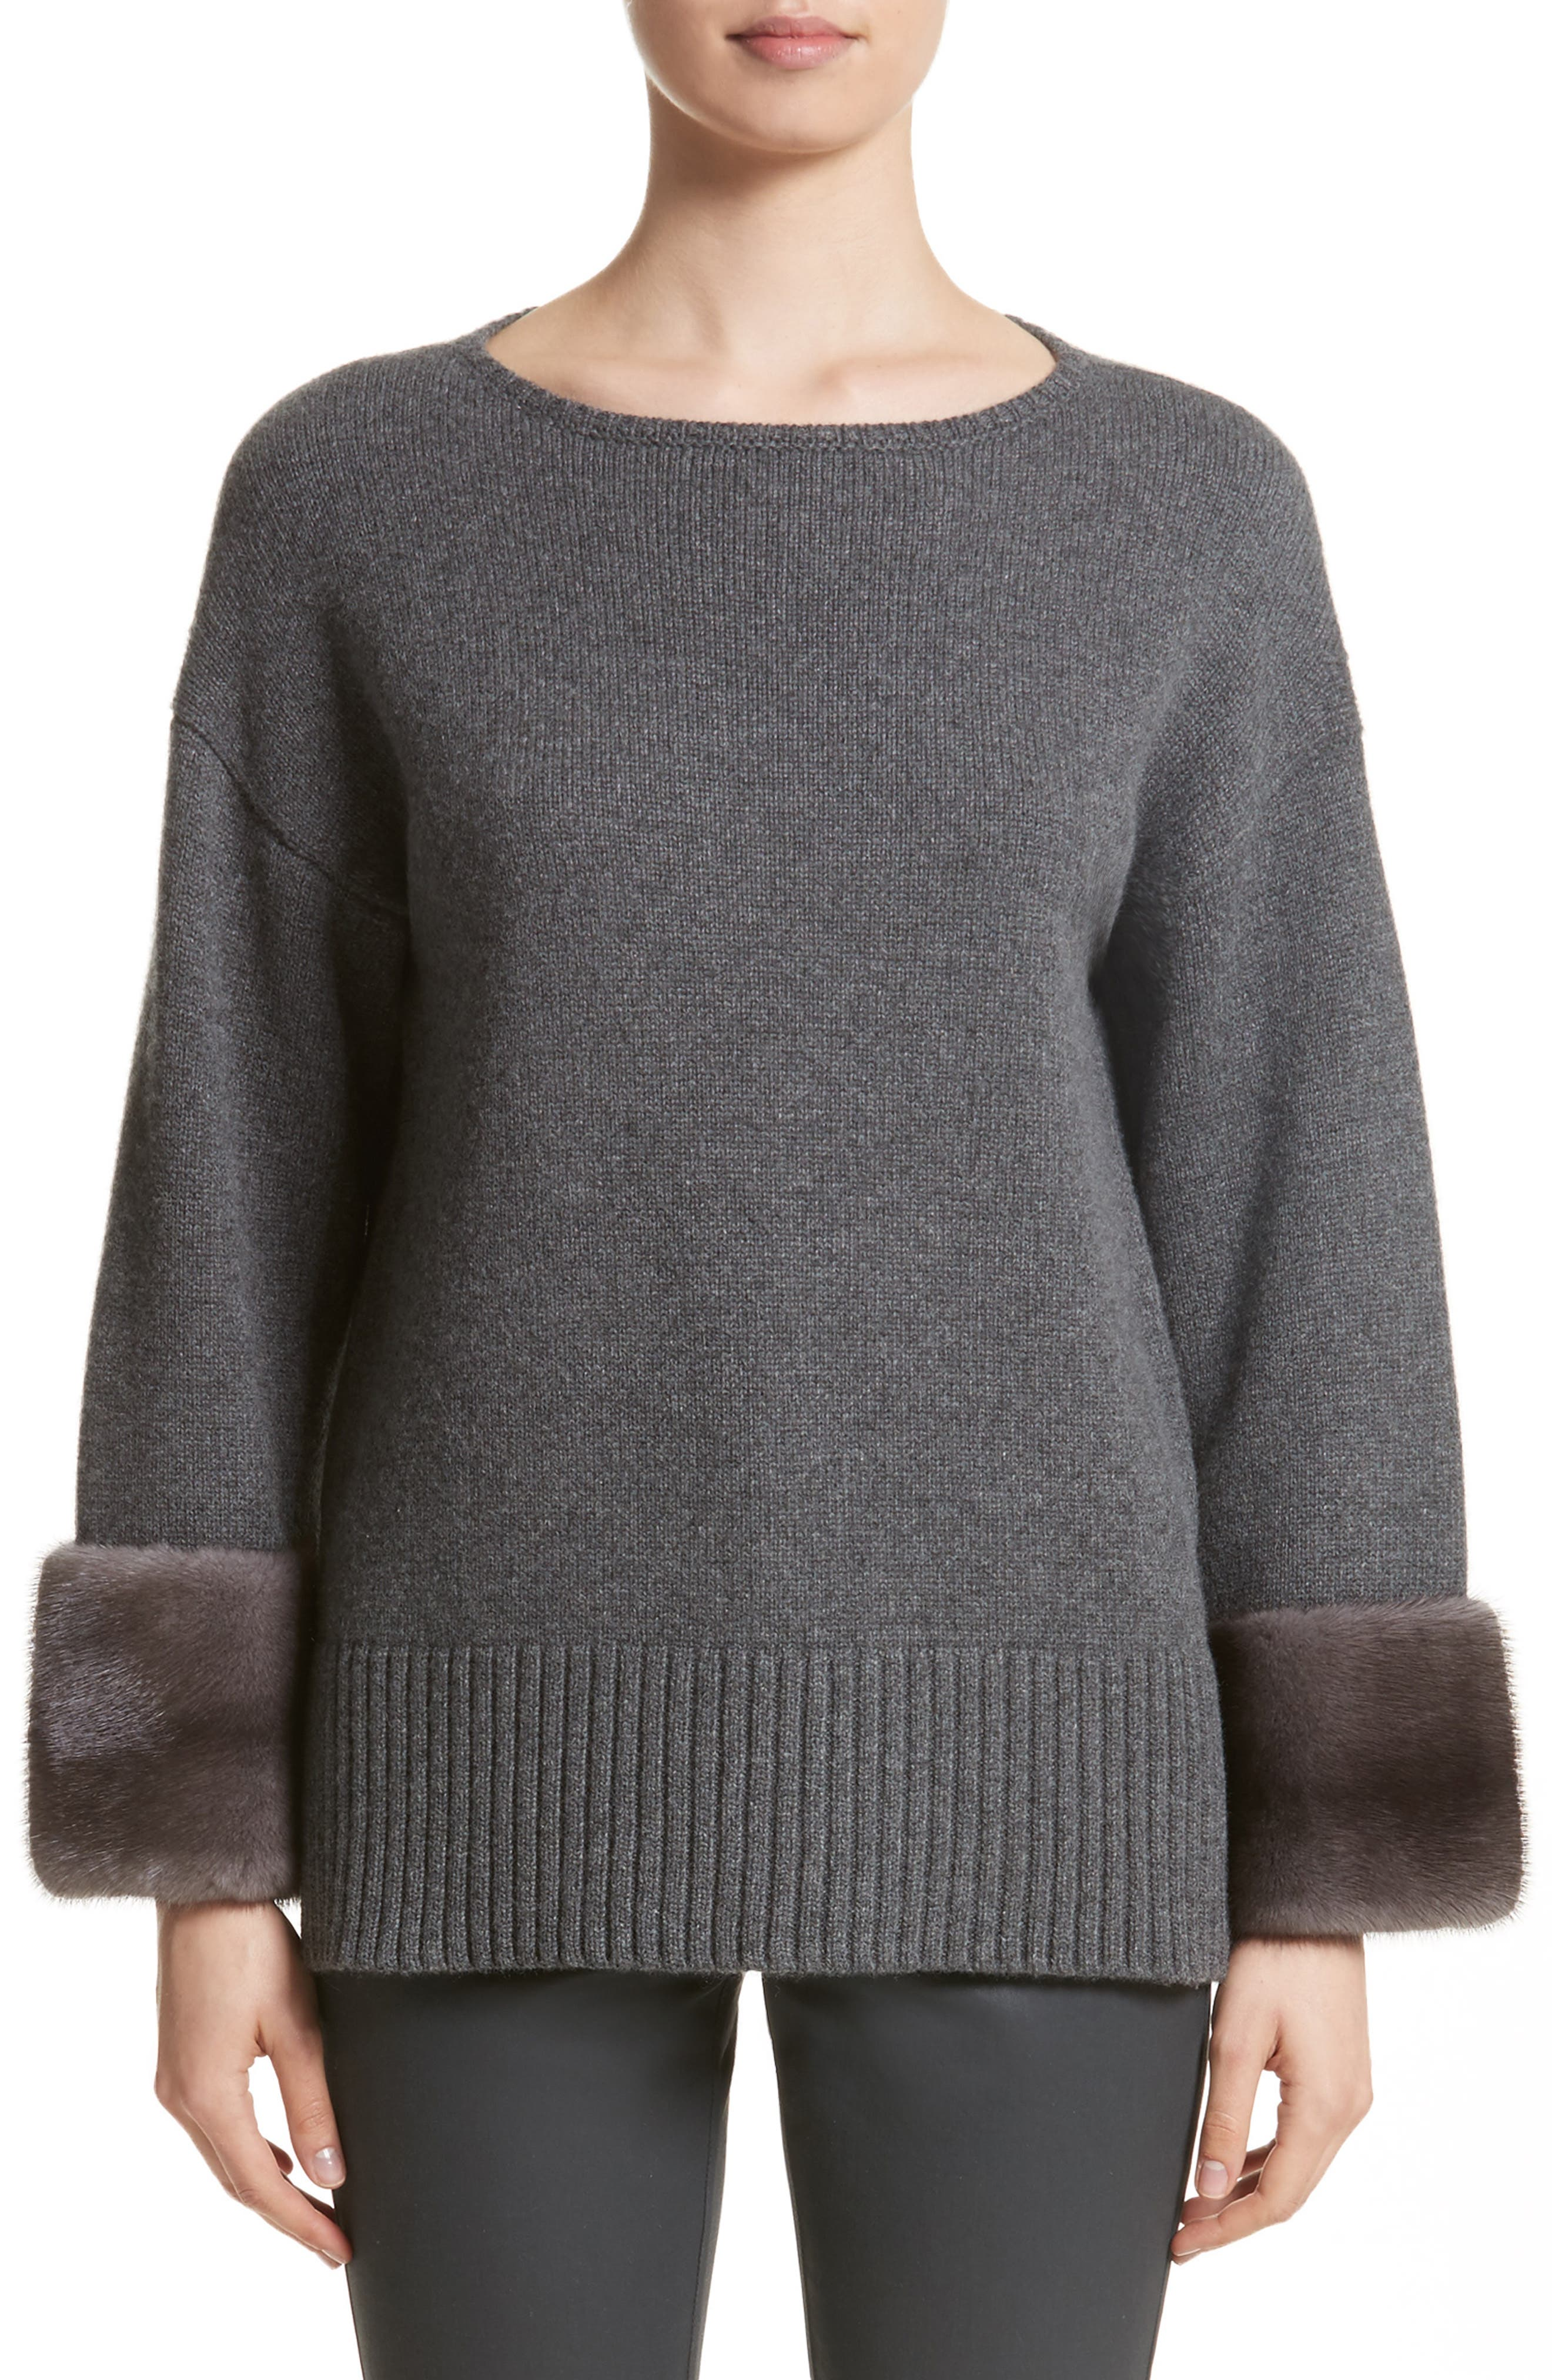 Main Image - Lafayette 148 New York Cashmere Sweater with Genuine Mink Fur Cuffs